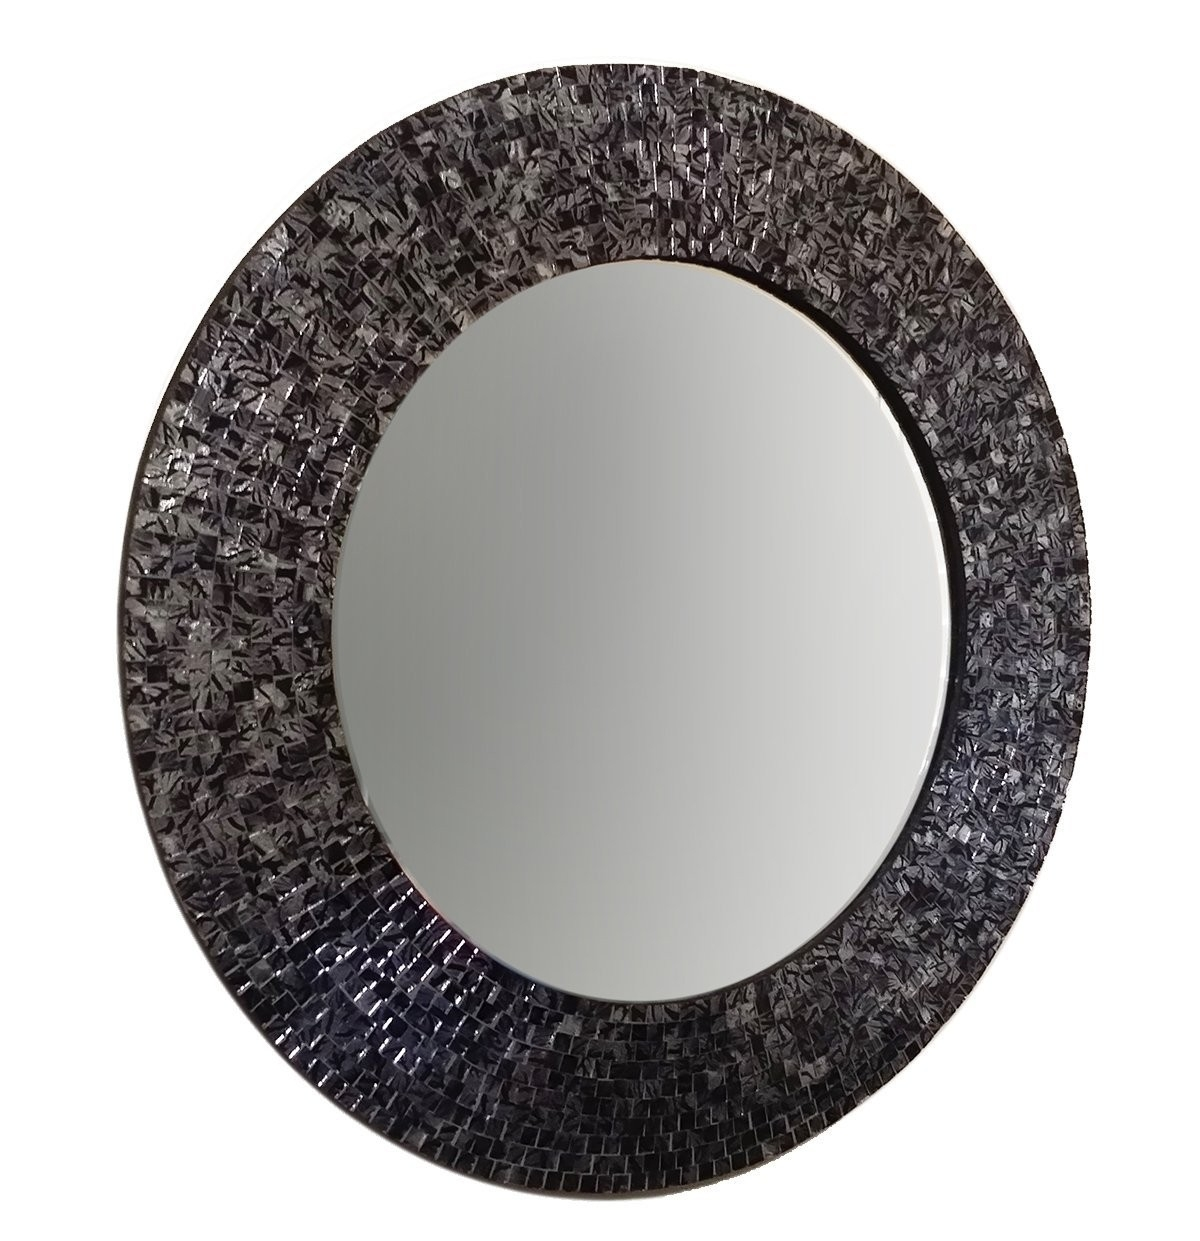 Buy 24 Blacksilver Metallic Traditional Mosaic Decorative Wall Inside Mosaic Wall Mirrors (Image 1 of 15)